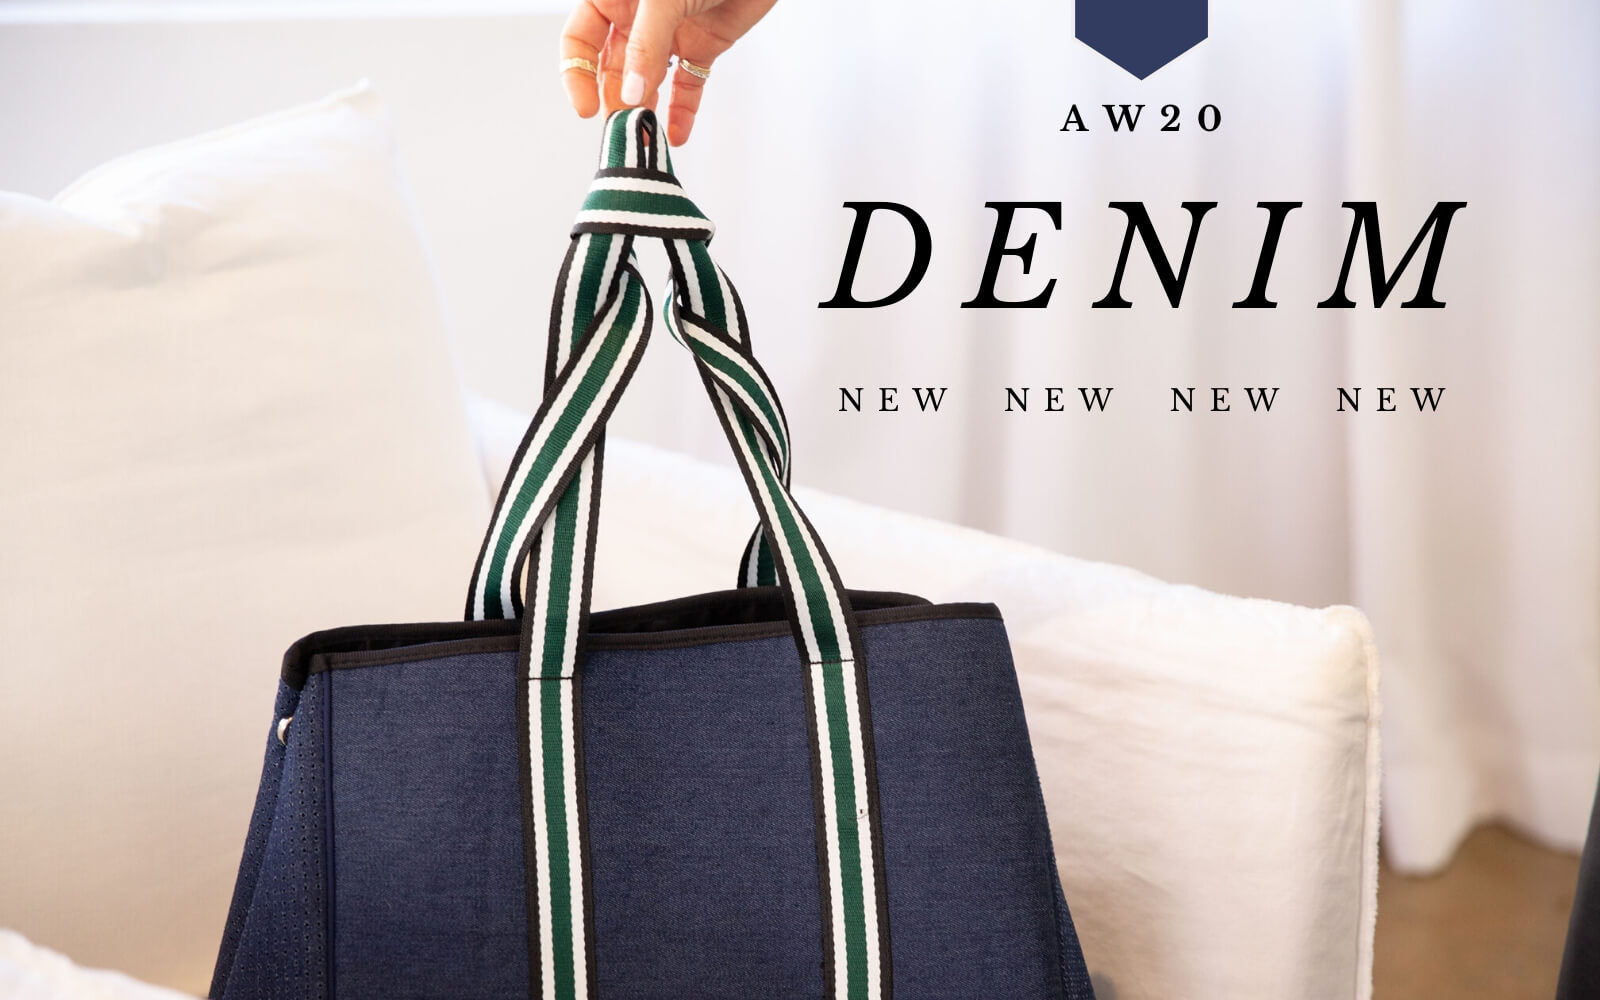 Denim Tote Bag Range